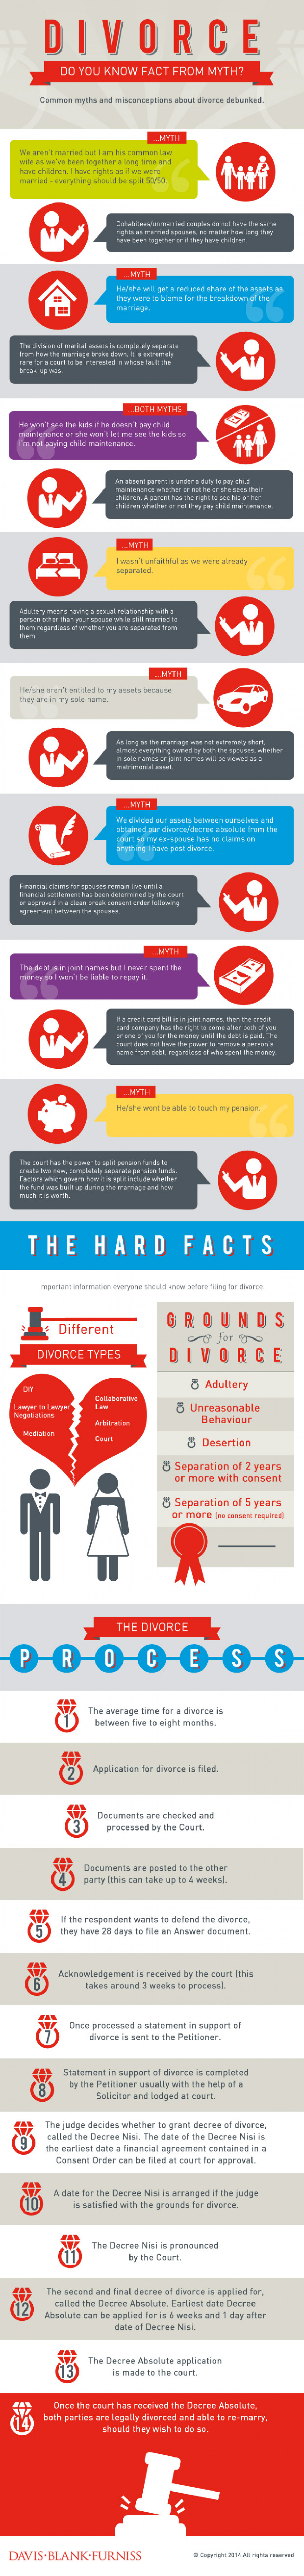 Divorce - Do You Know Fact From Myth? Infographic